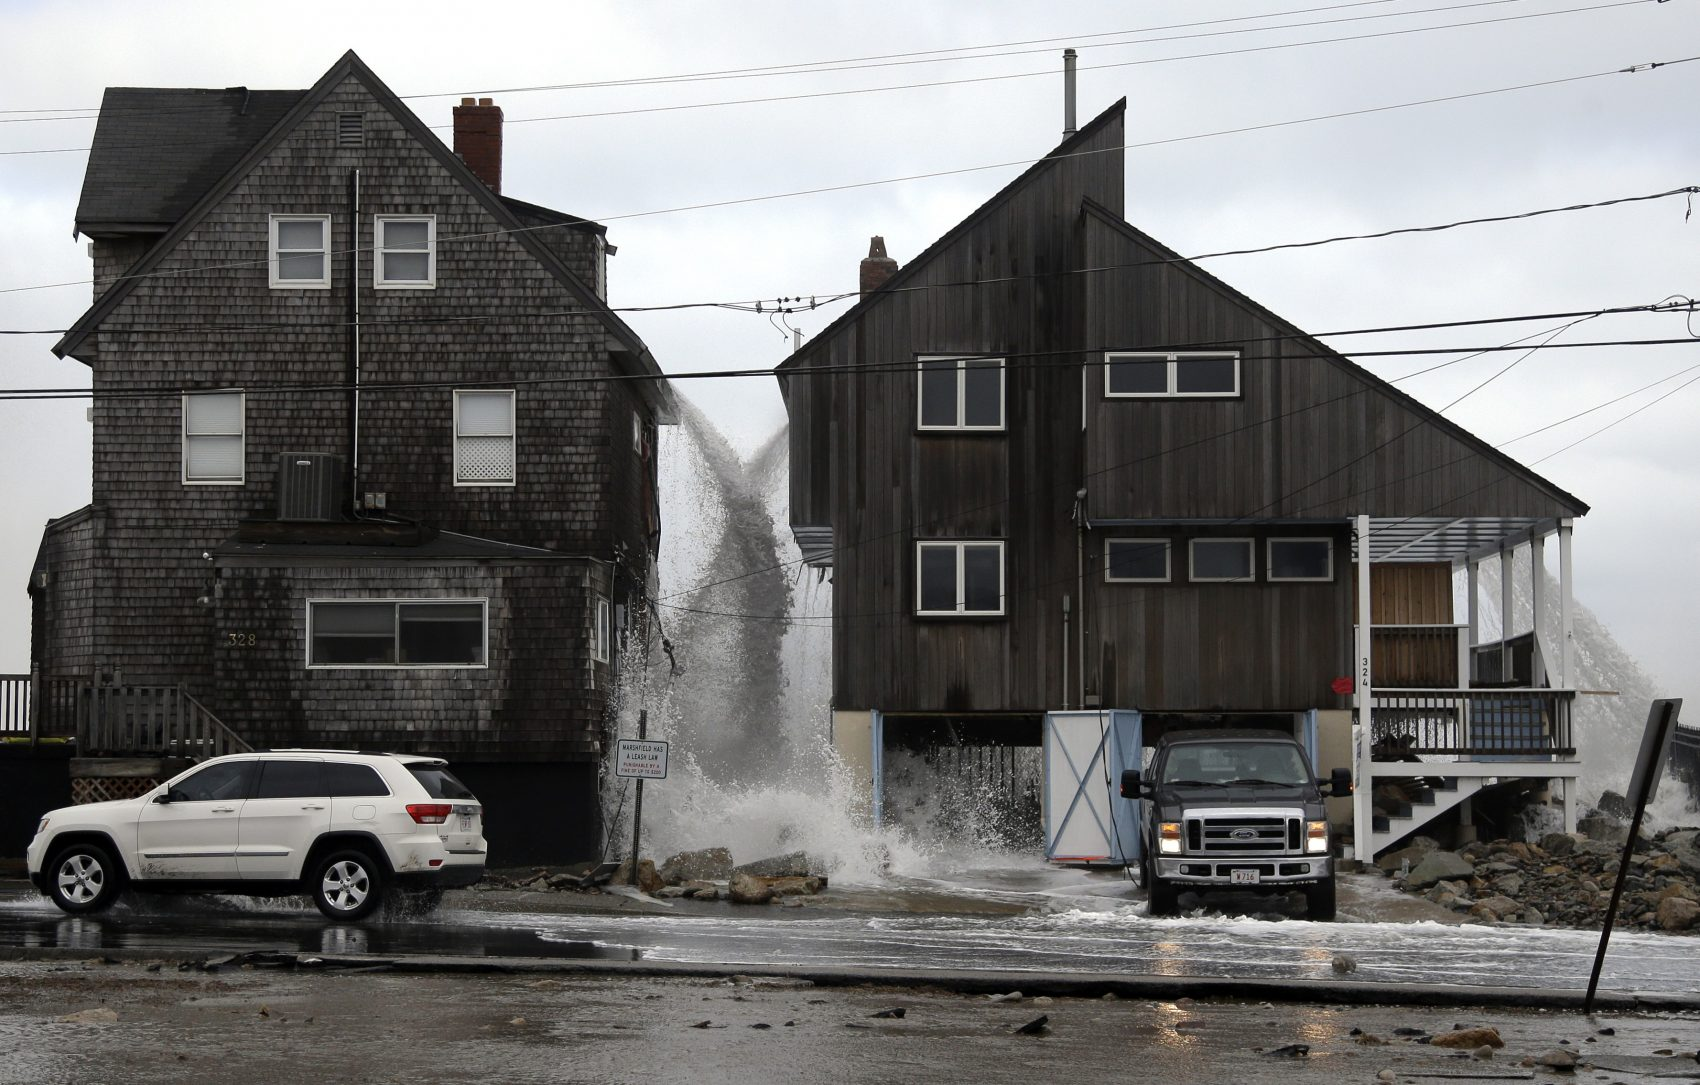 Ocean water pours off the roofs of these beachfront homes, Tuesday, March 6, 2018, as high surf continues in Marshfield, Mass. Utilities are racing to restore power to tens of thousands of customers in the Northeast still without electricity after last week's storm as another nor'easter threatens the hard-hit area with heavy, wet snow, high winds, and more outages. (Elise Amendola/AP)